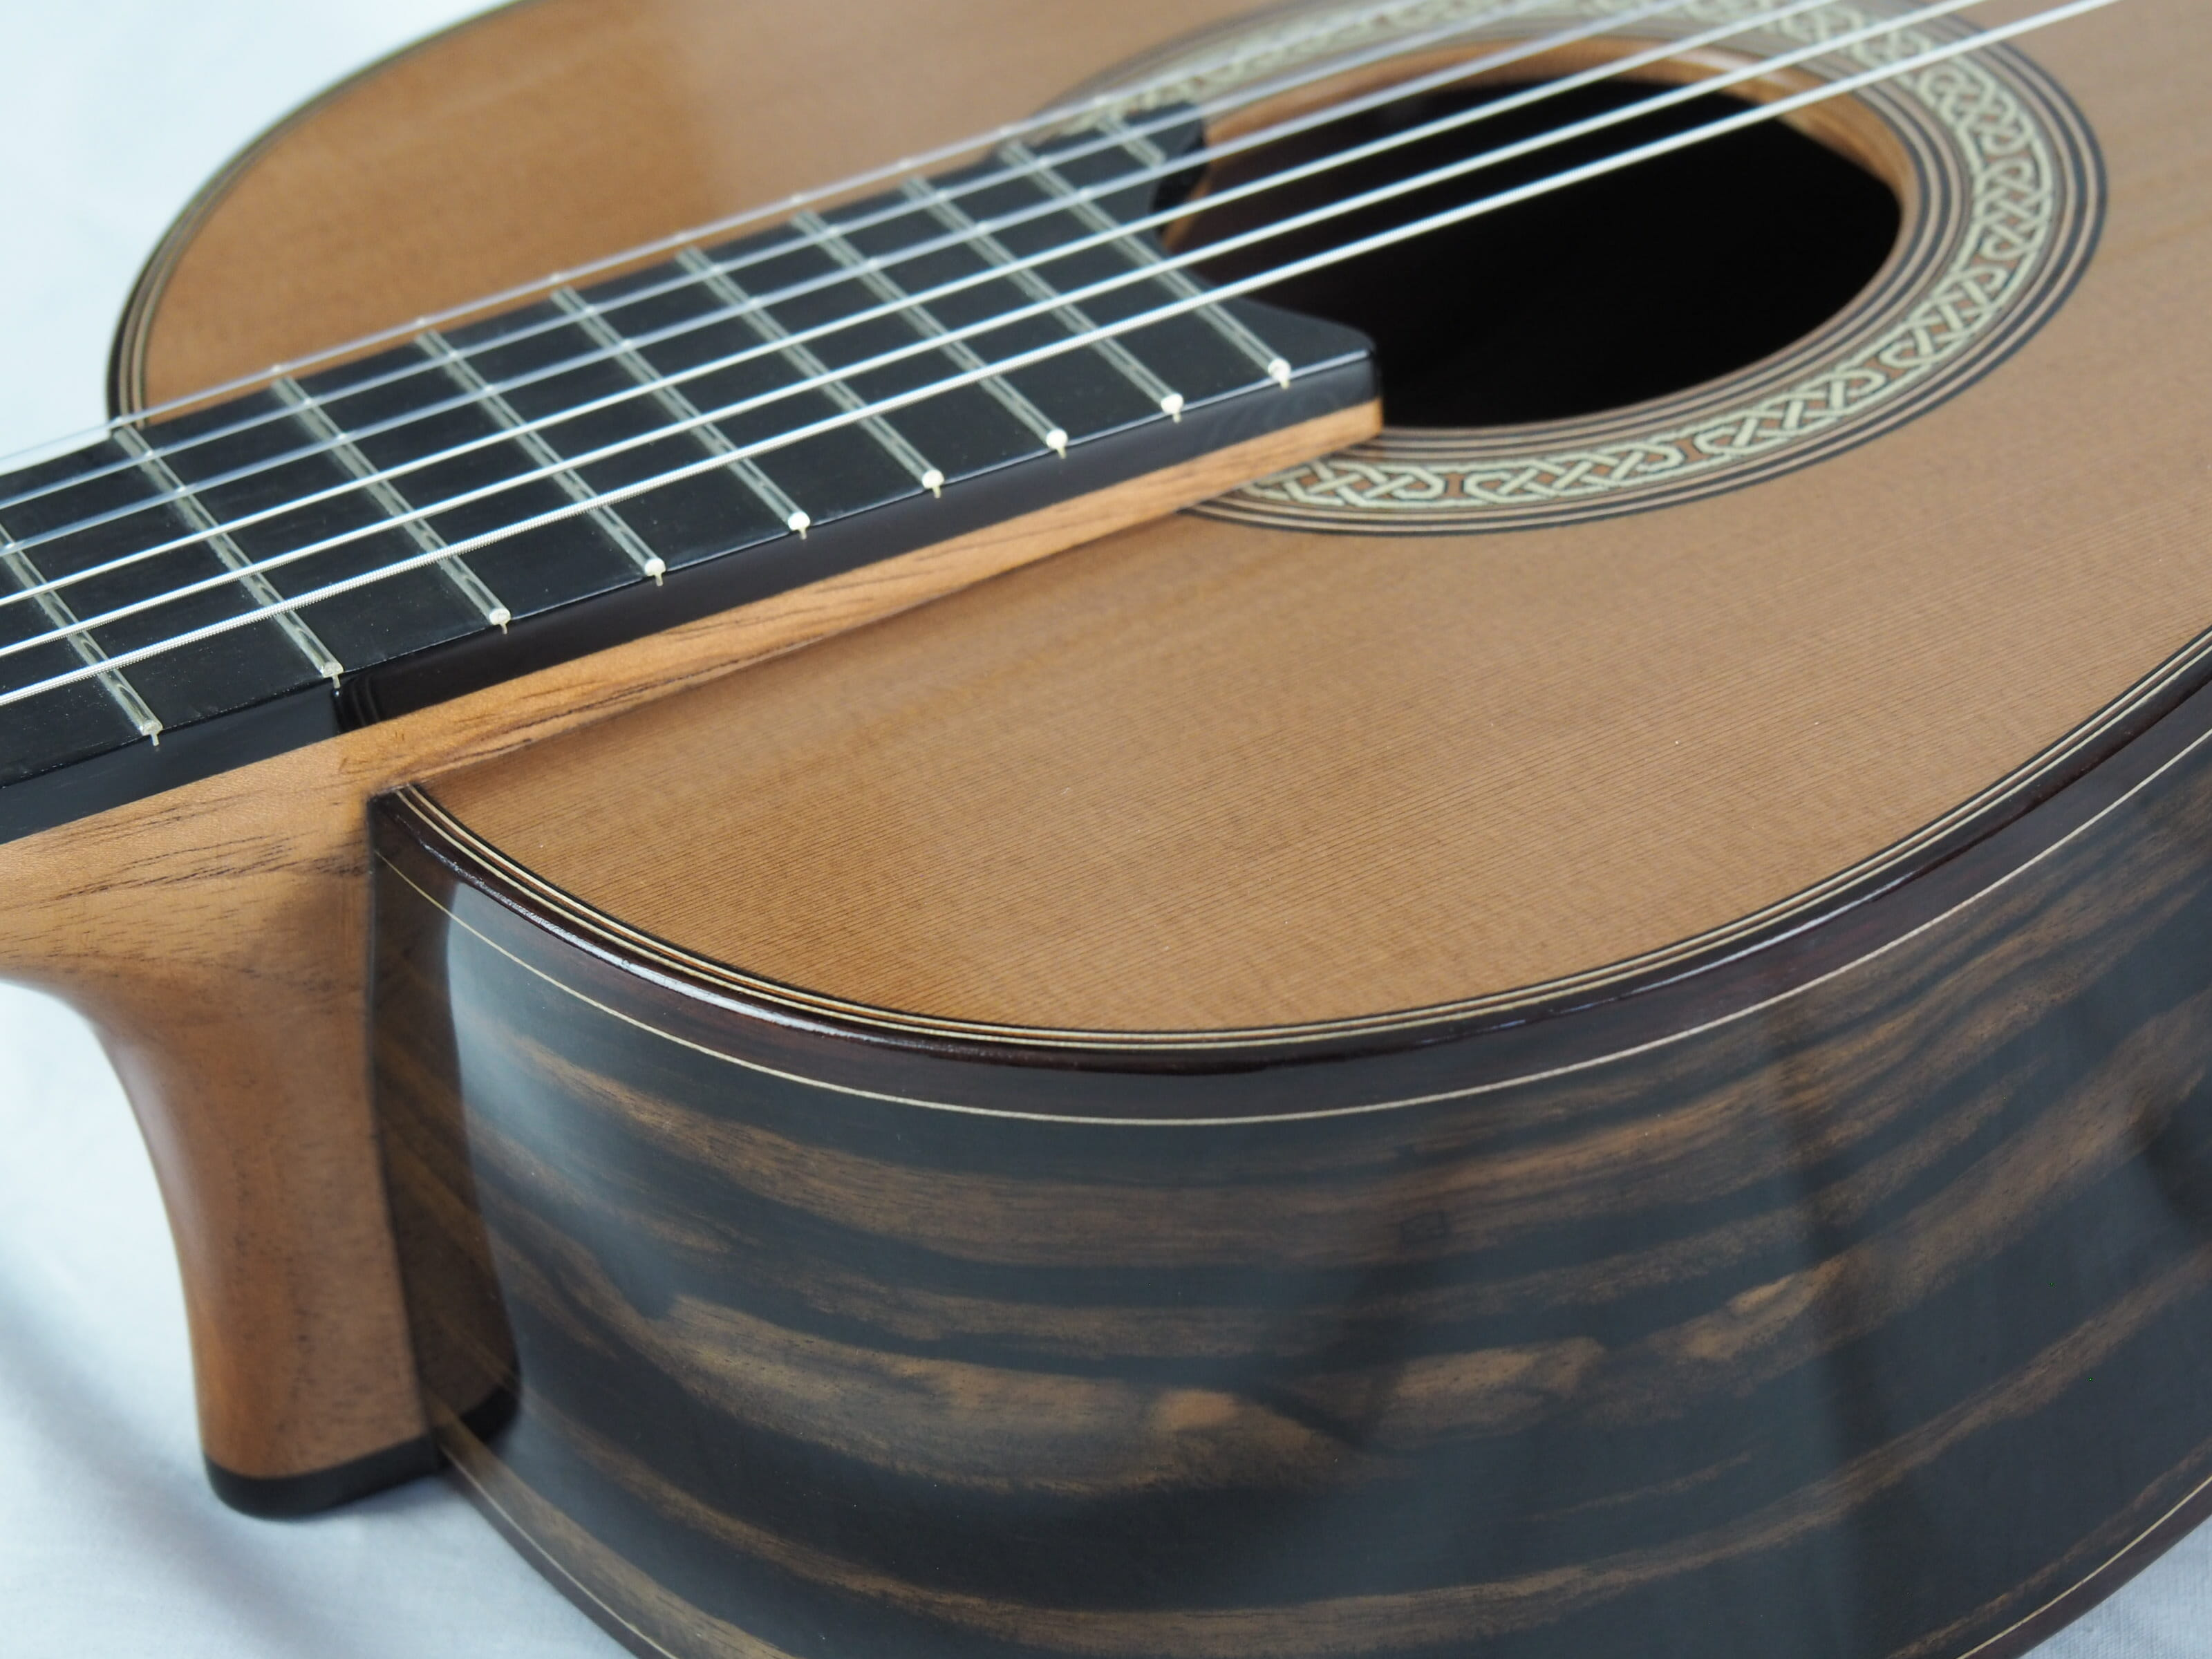 Michael O'Leary luthier guitare classique 19OLE237-02